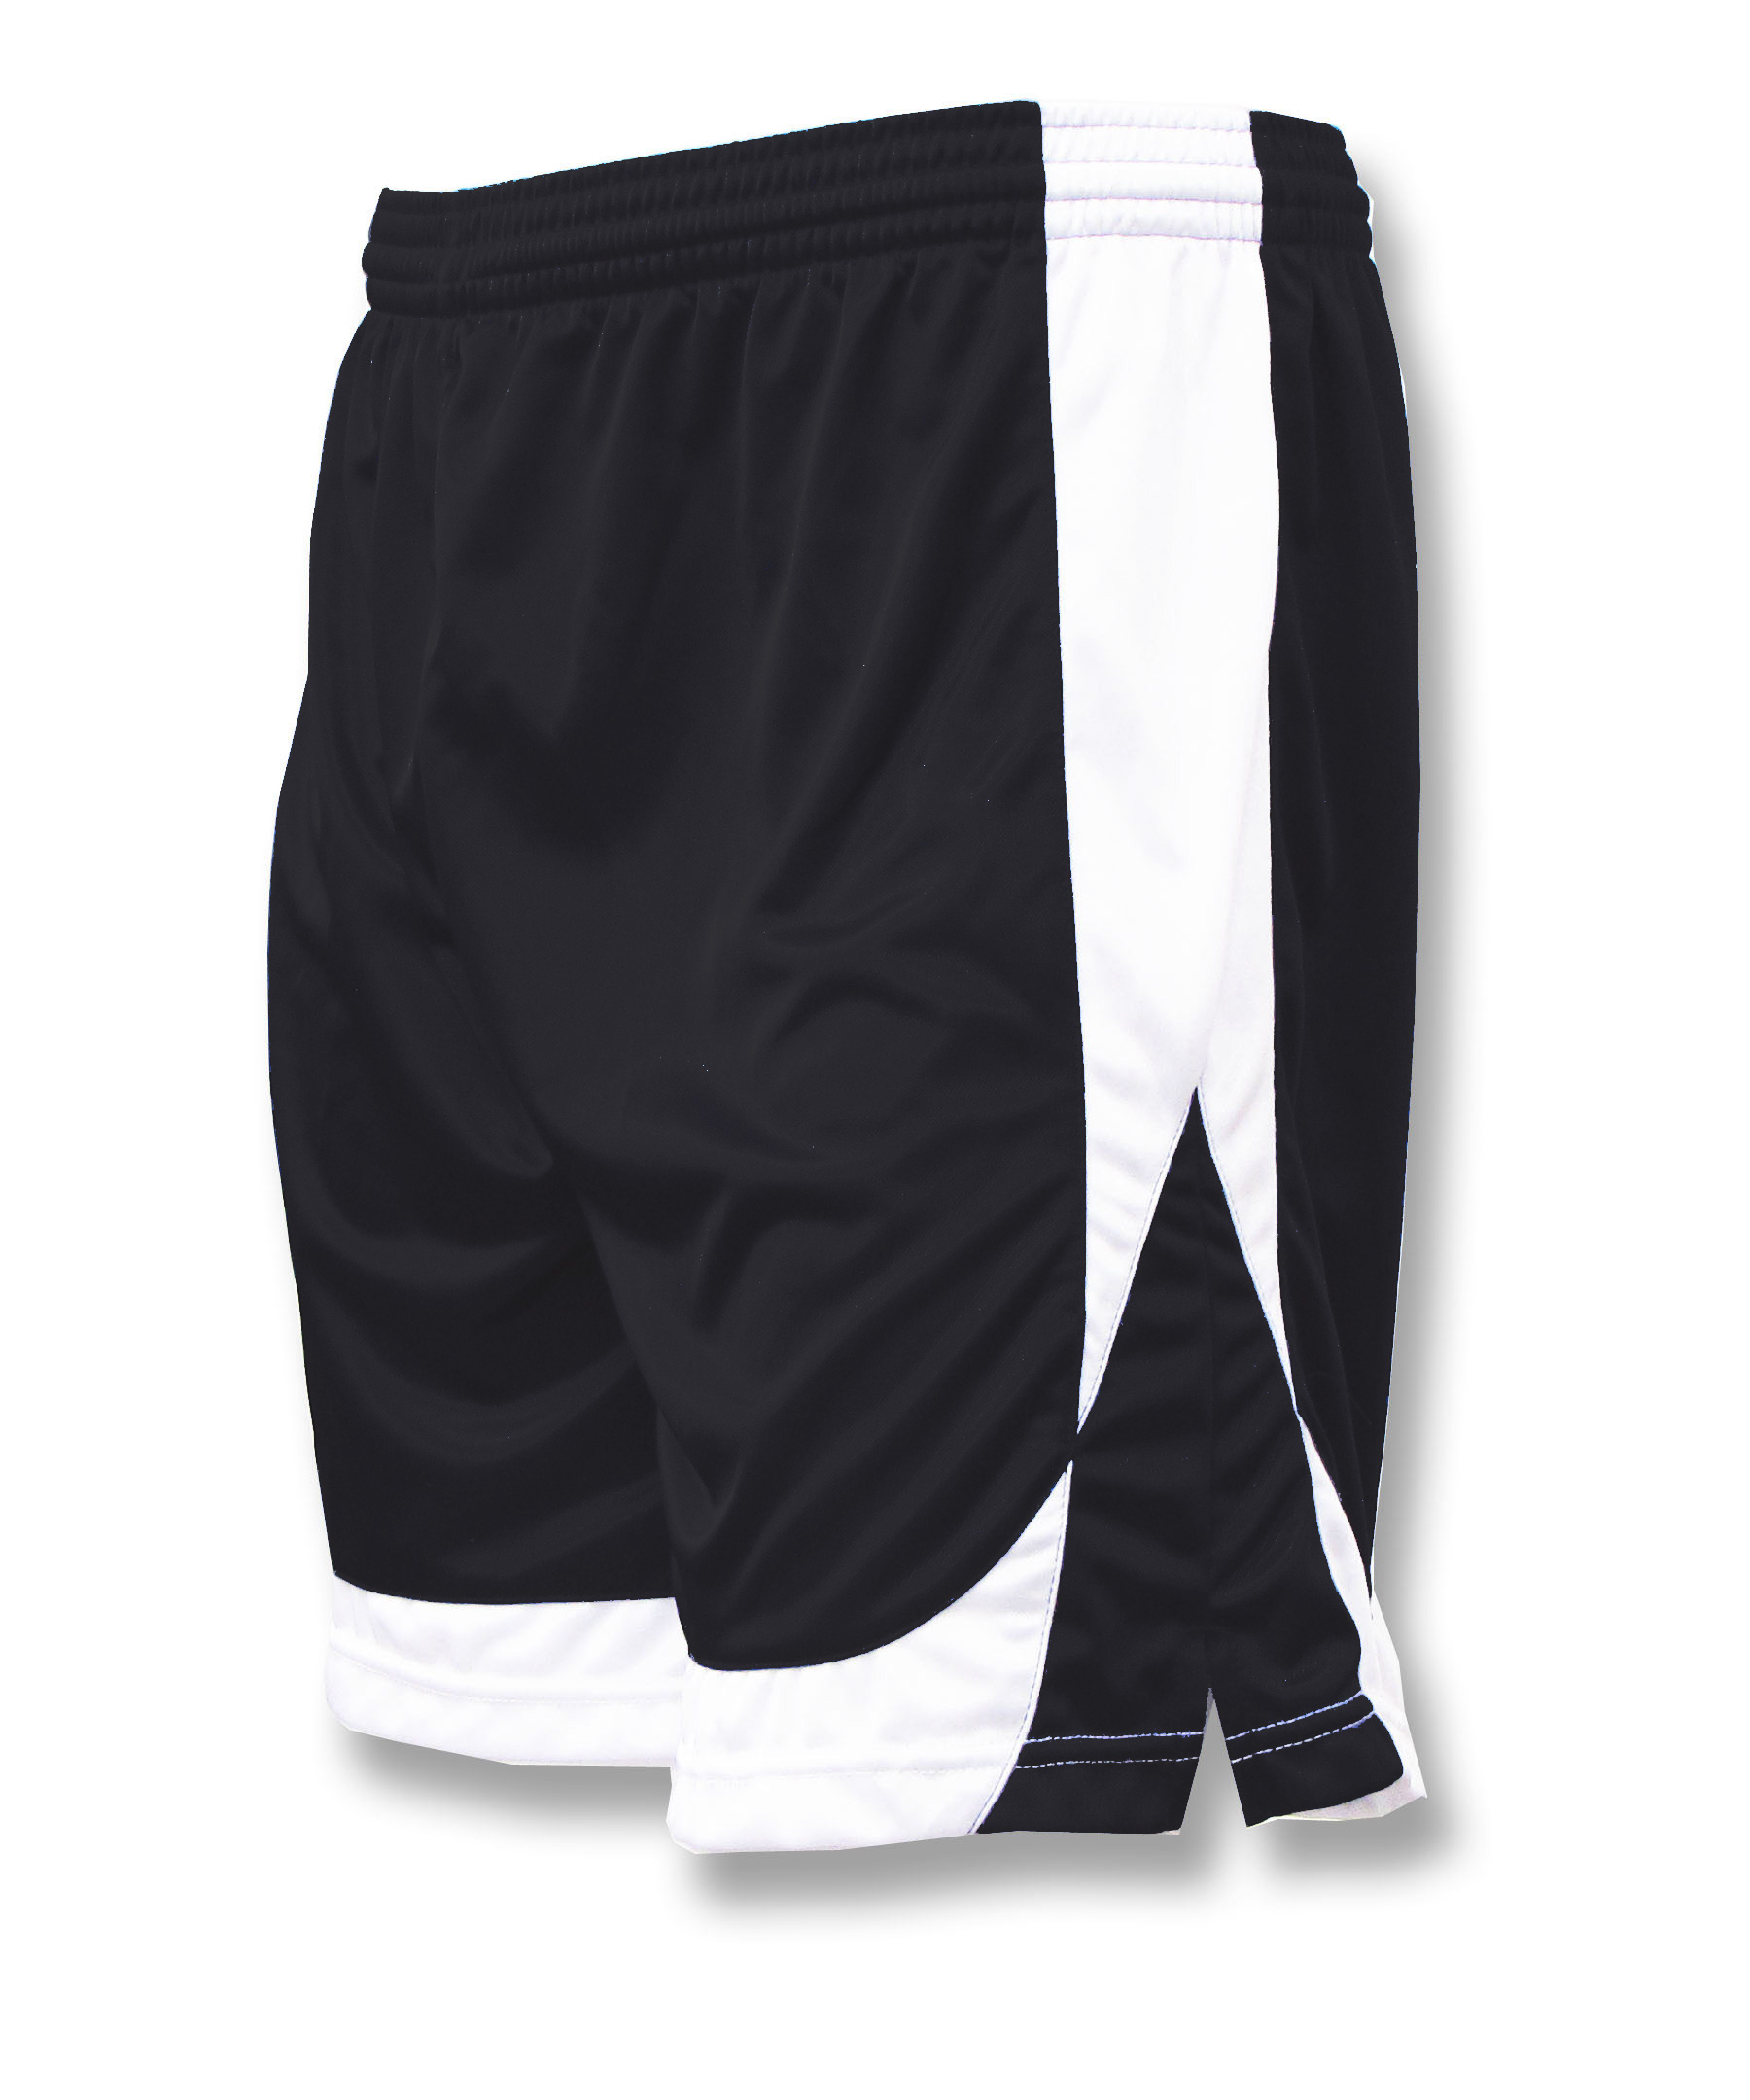 Omega soccer shorts in black/white by Code Four Athletics